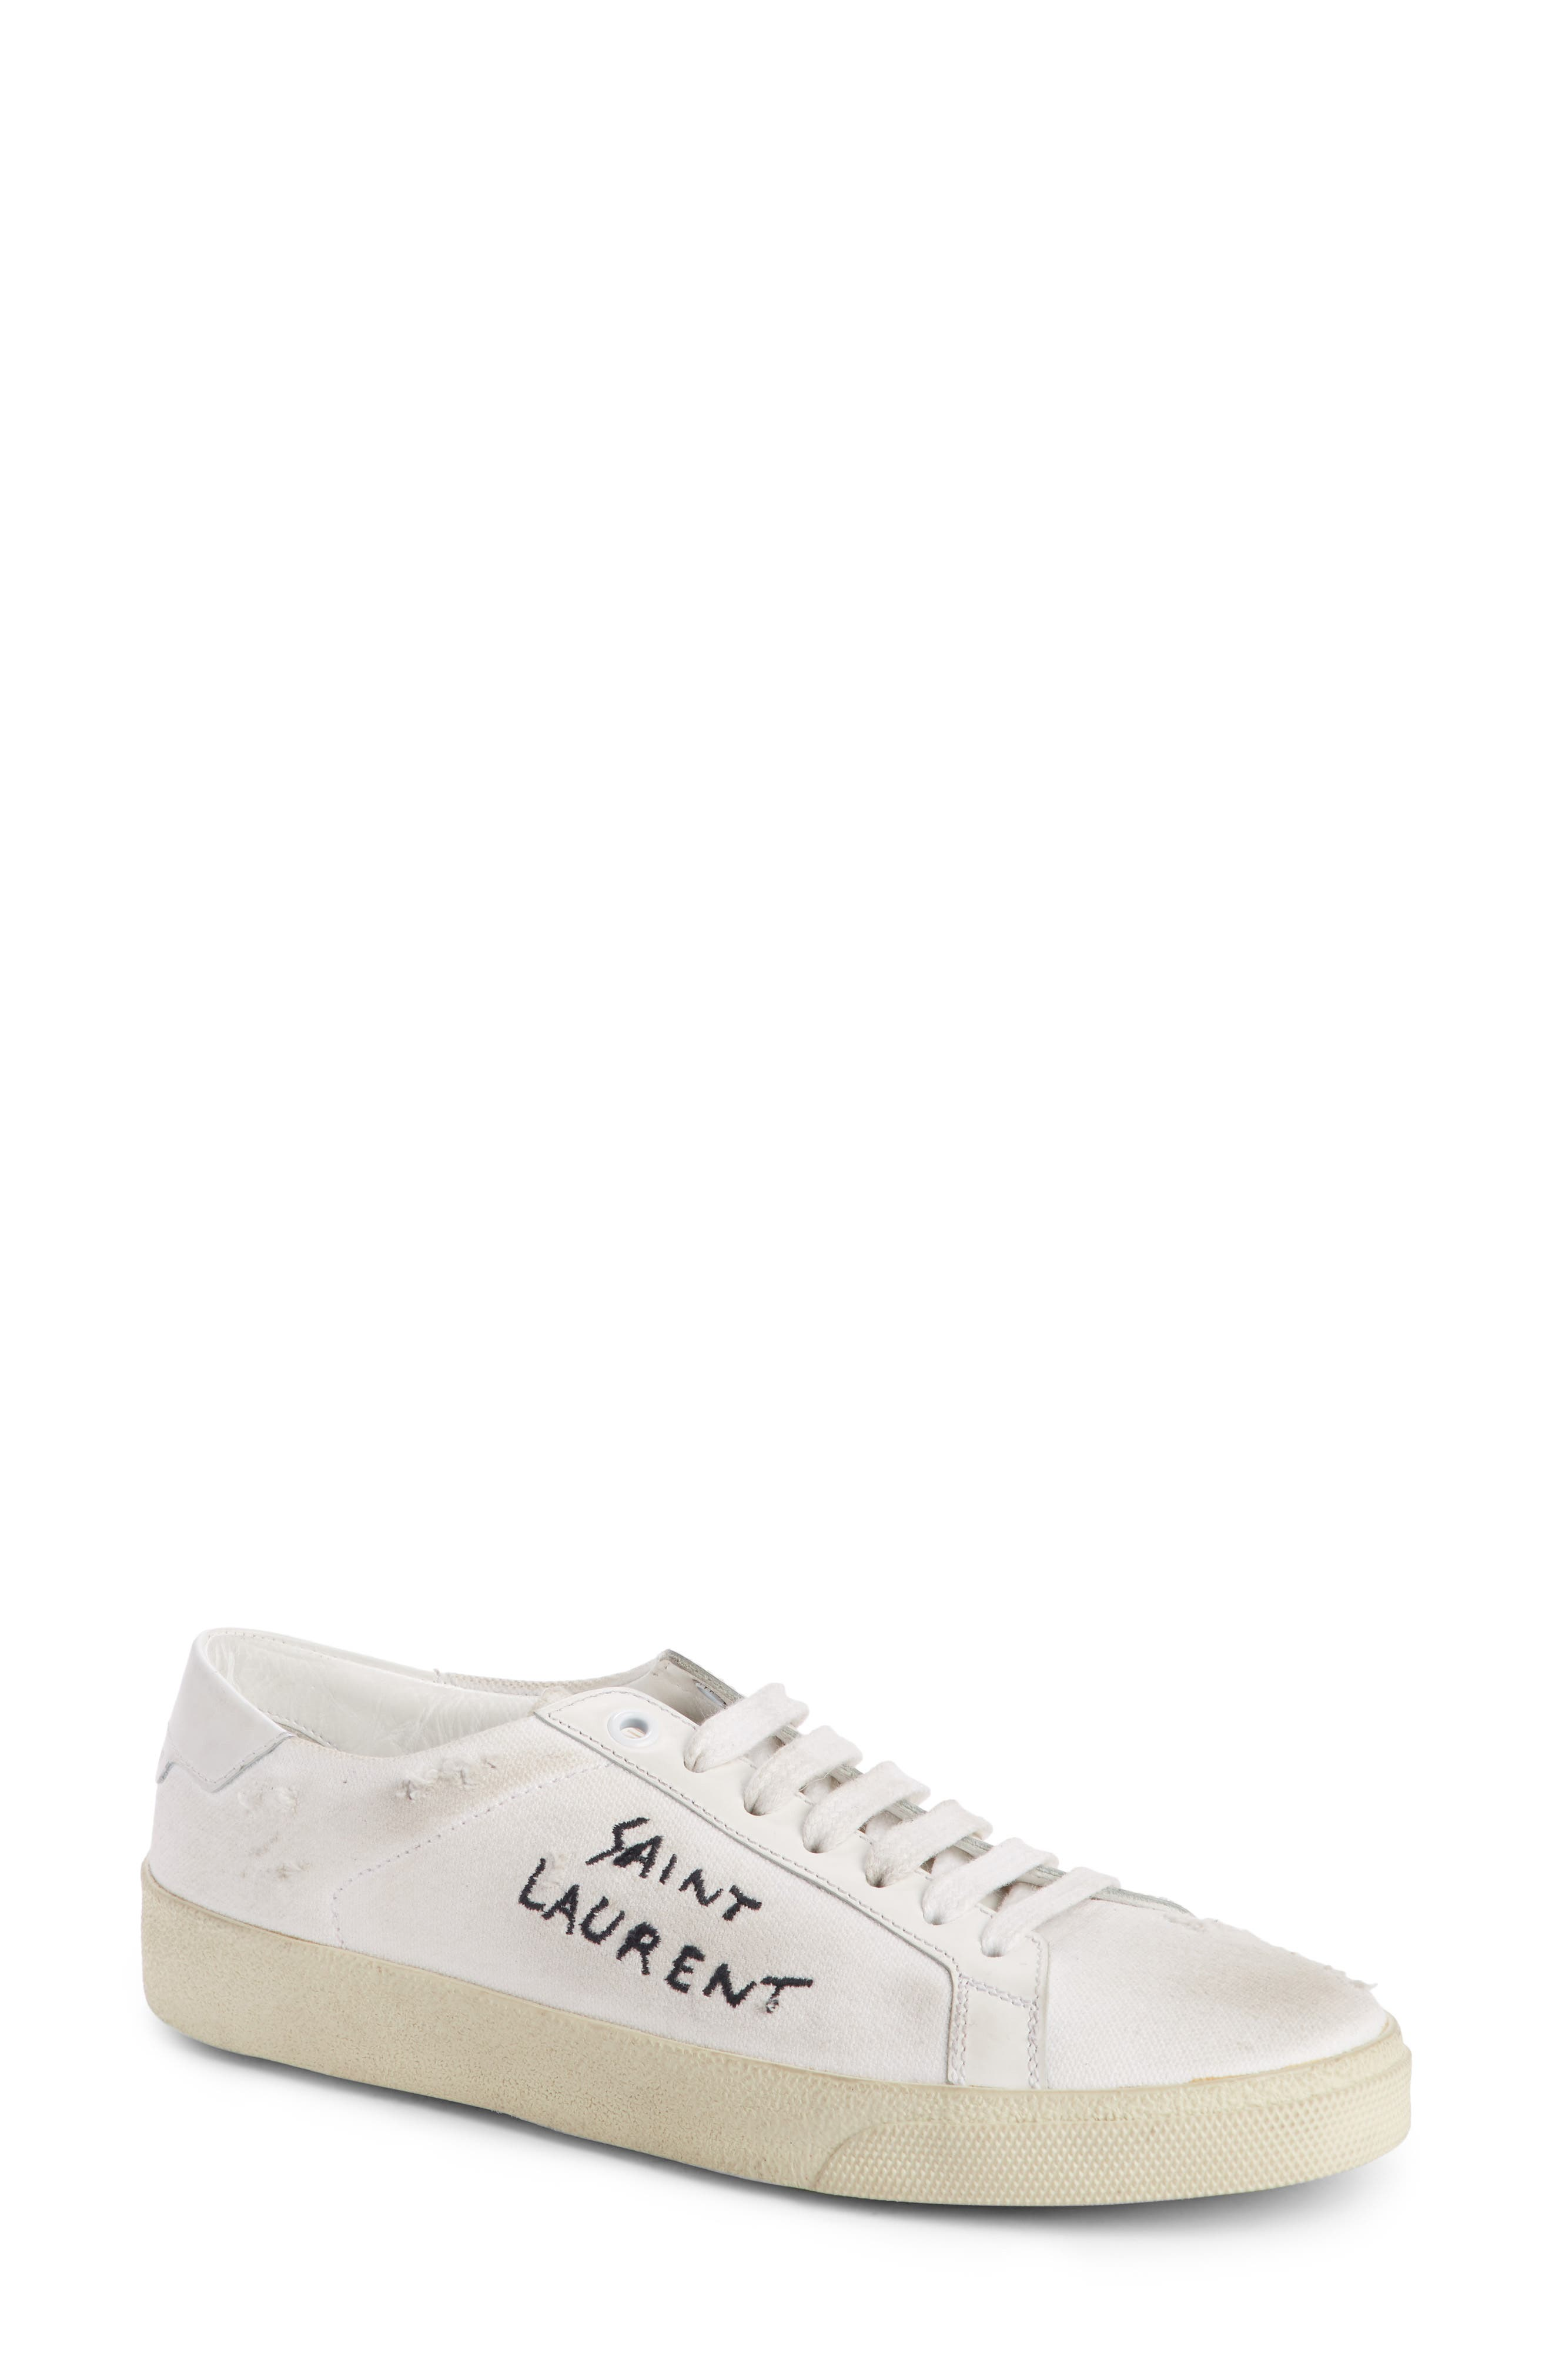 Saint Laurent Court Classic Lace-Up Sneaker (Women)